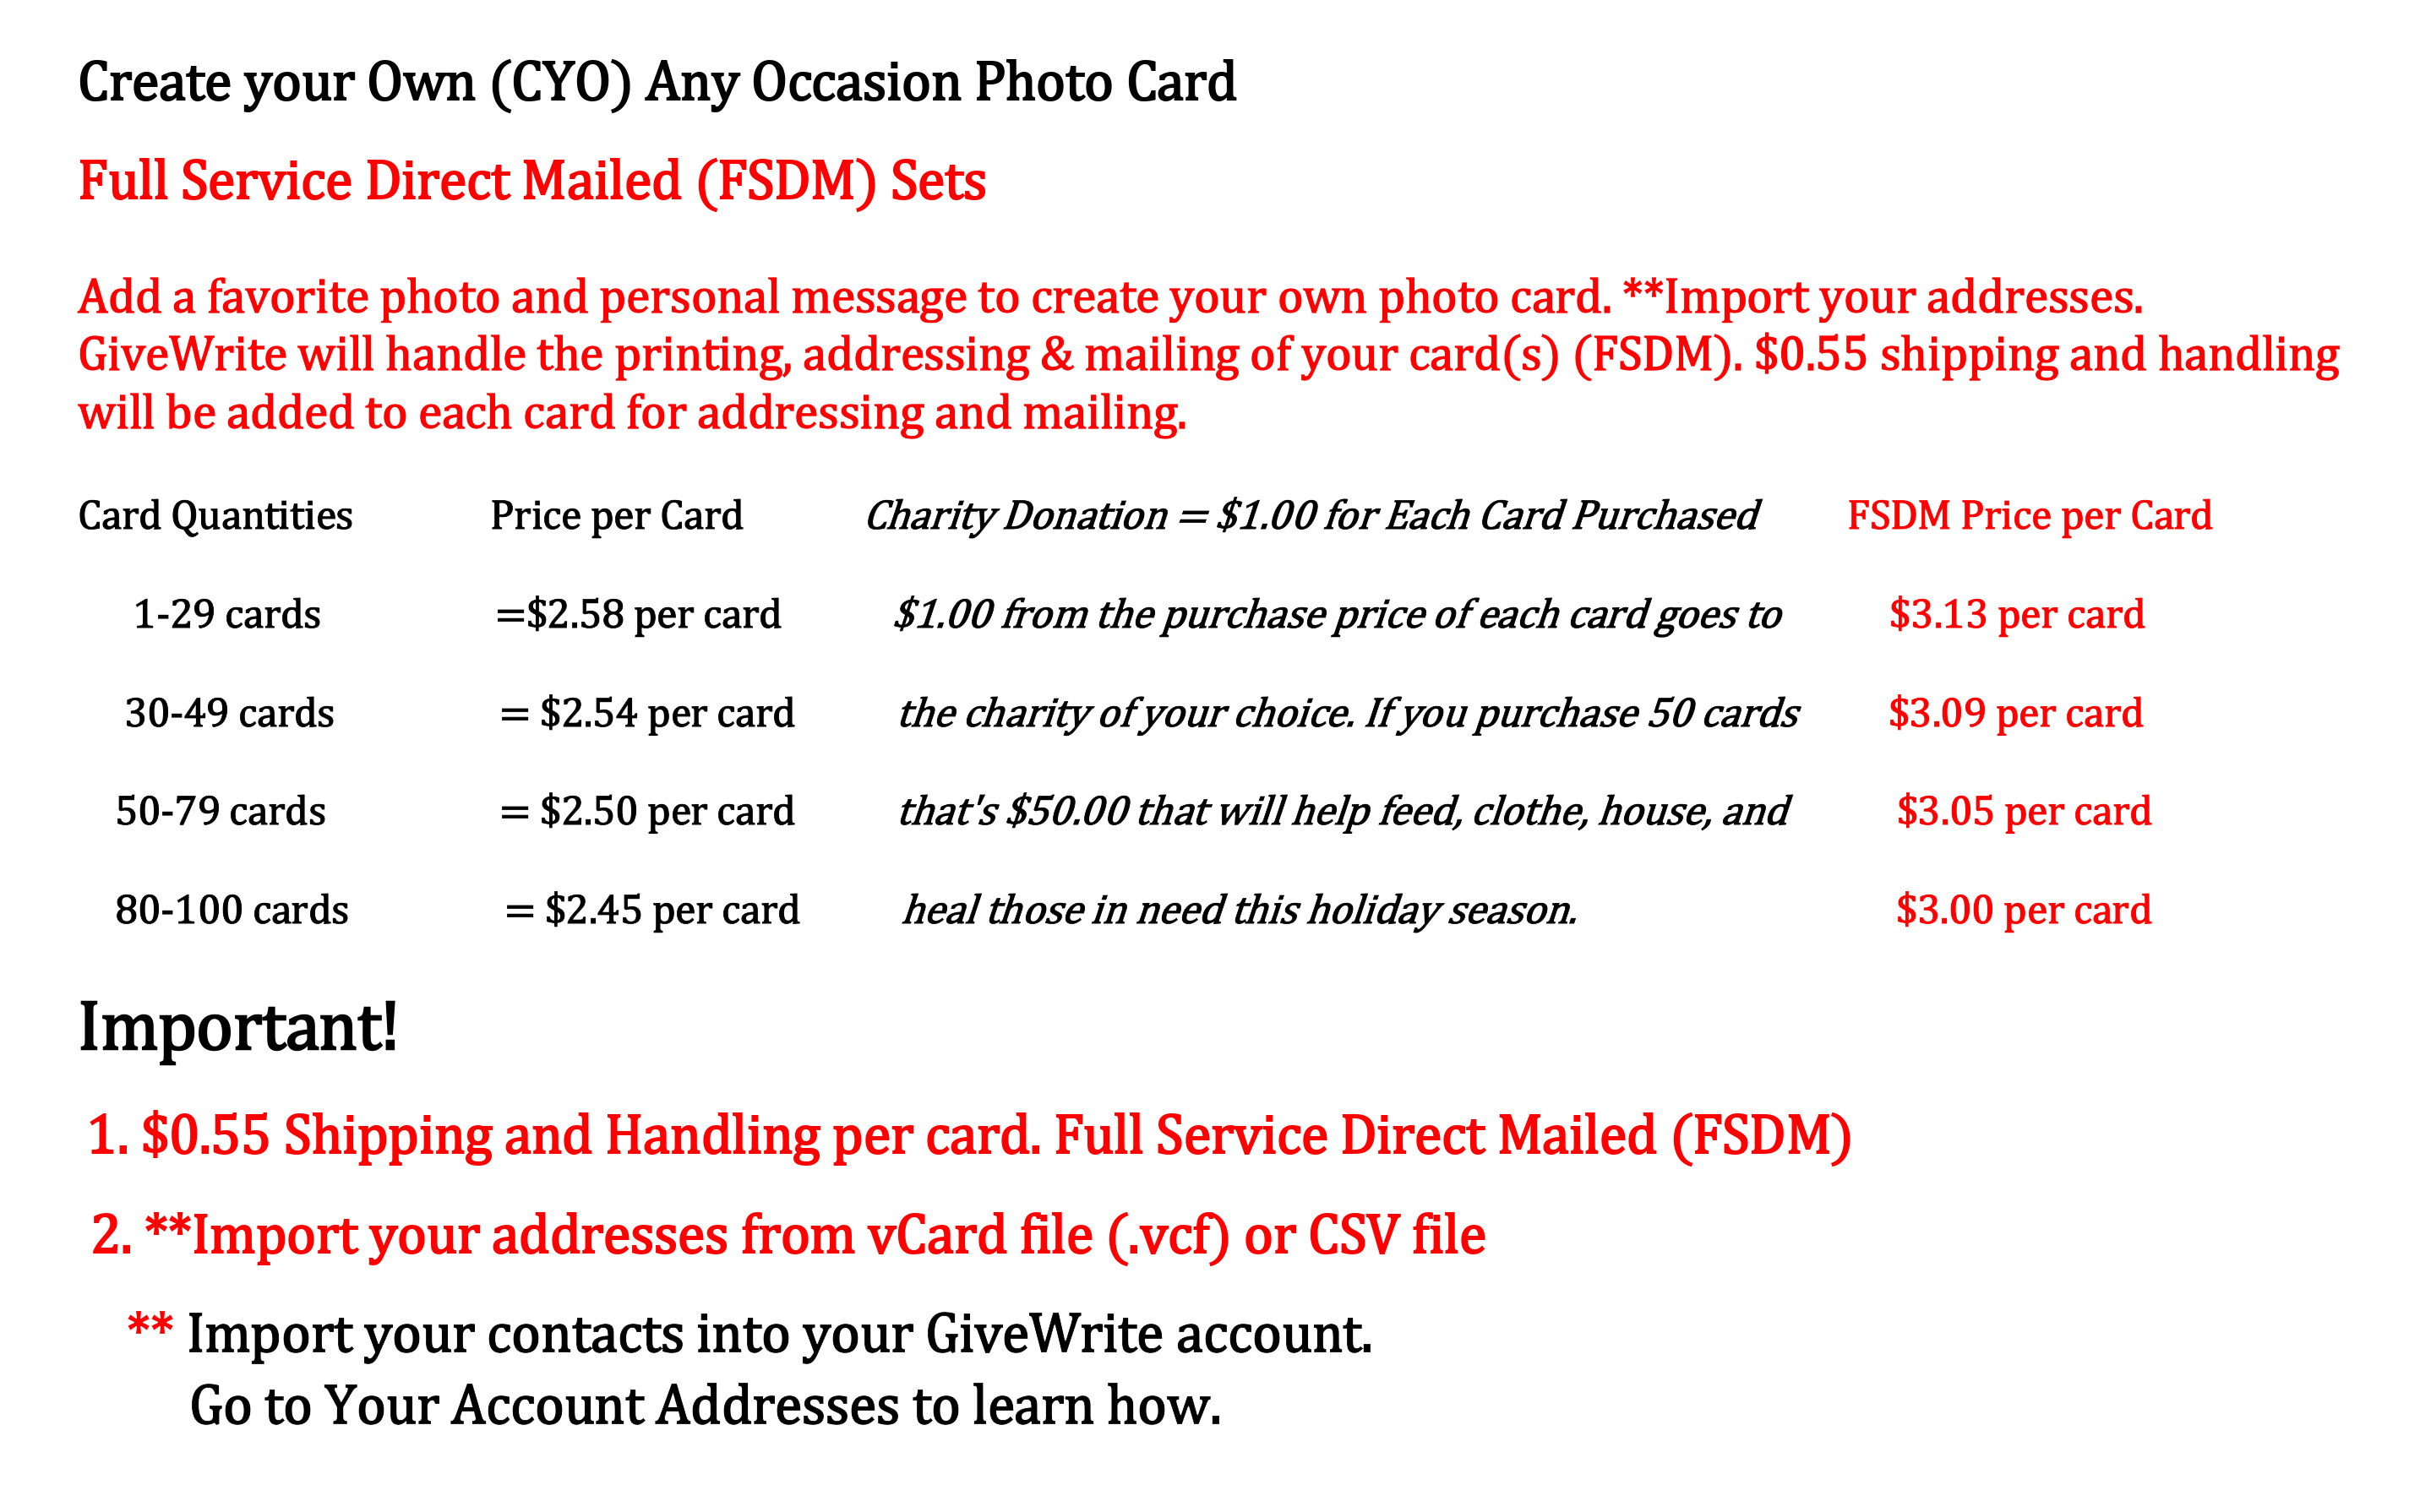 create-your-own-photo-cards-fsdm-sets.jpg